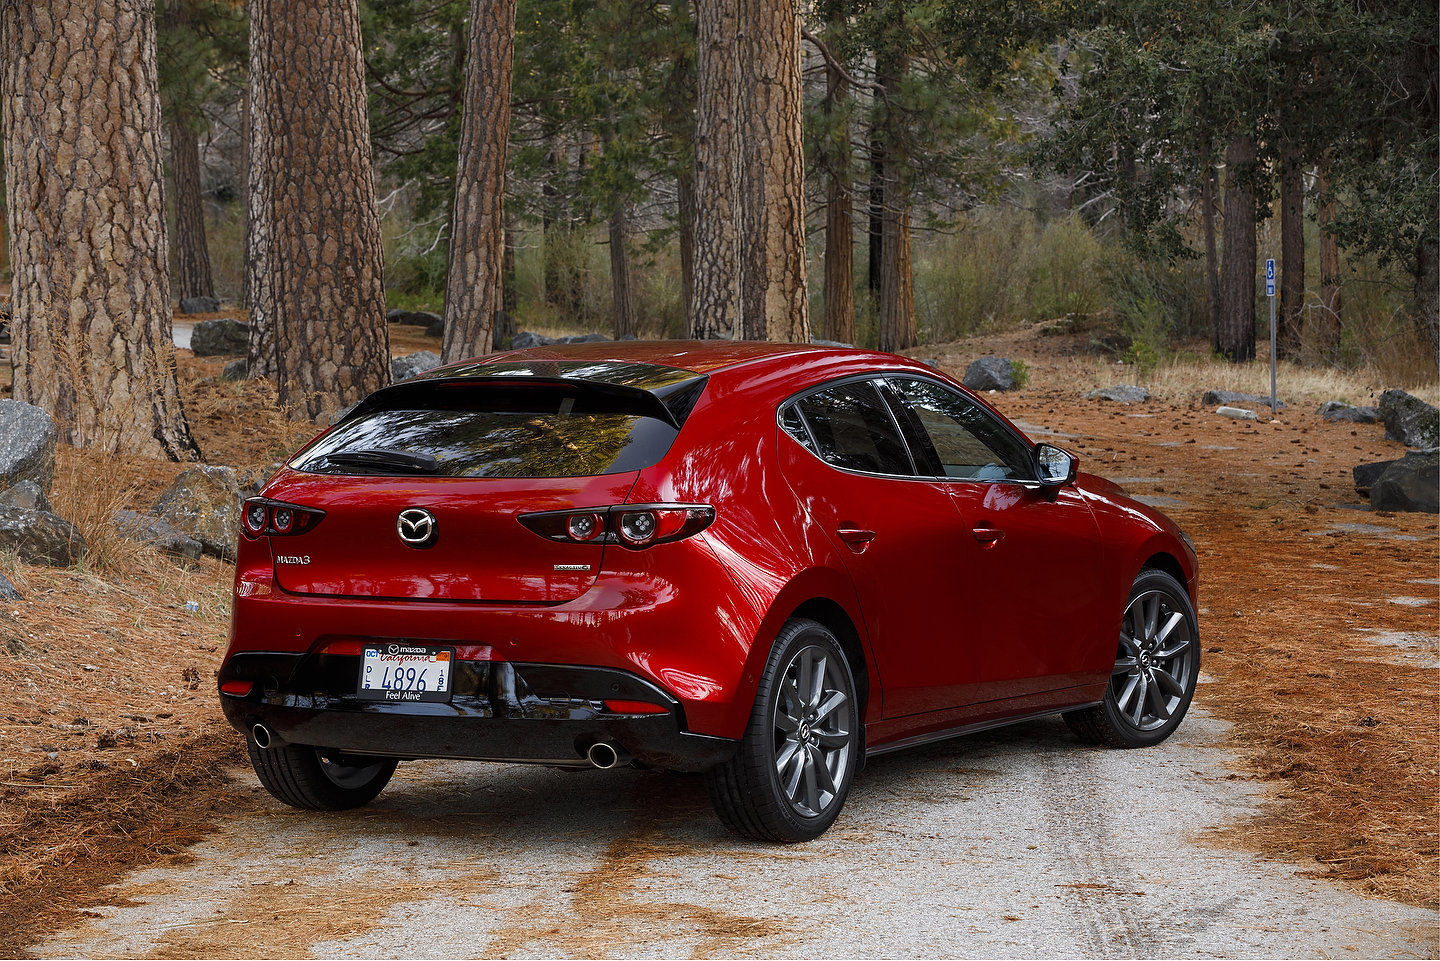 2019 Mazda3 Sport: A New Take on a Great Model